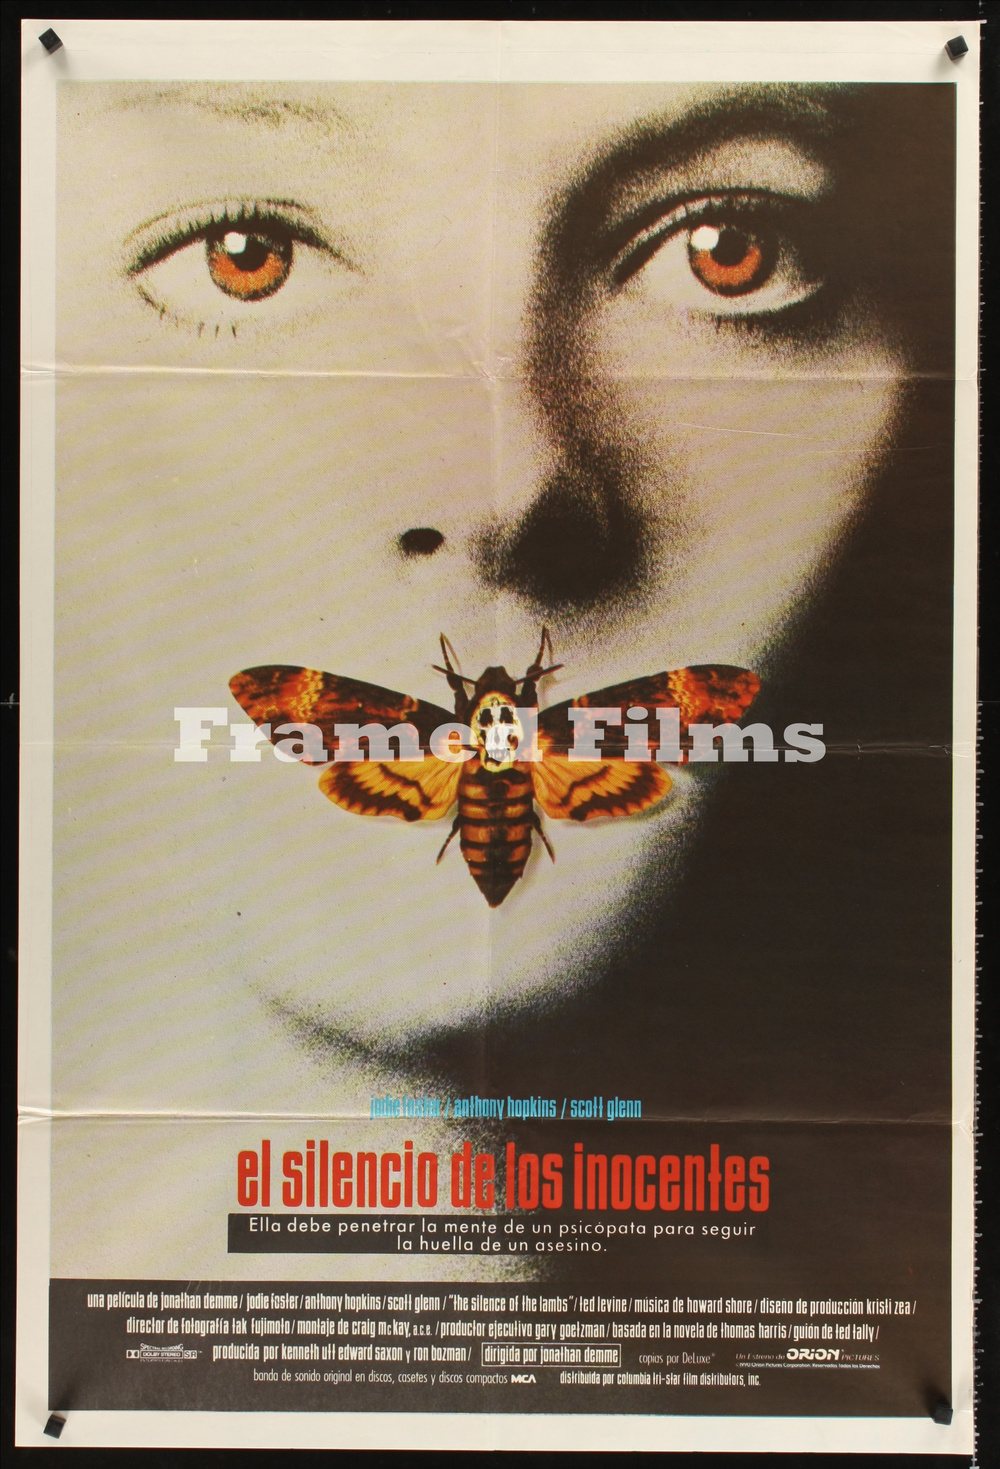 argentinean_silence_of_the_lambs_dupe1_JC01379_L.jpg